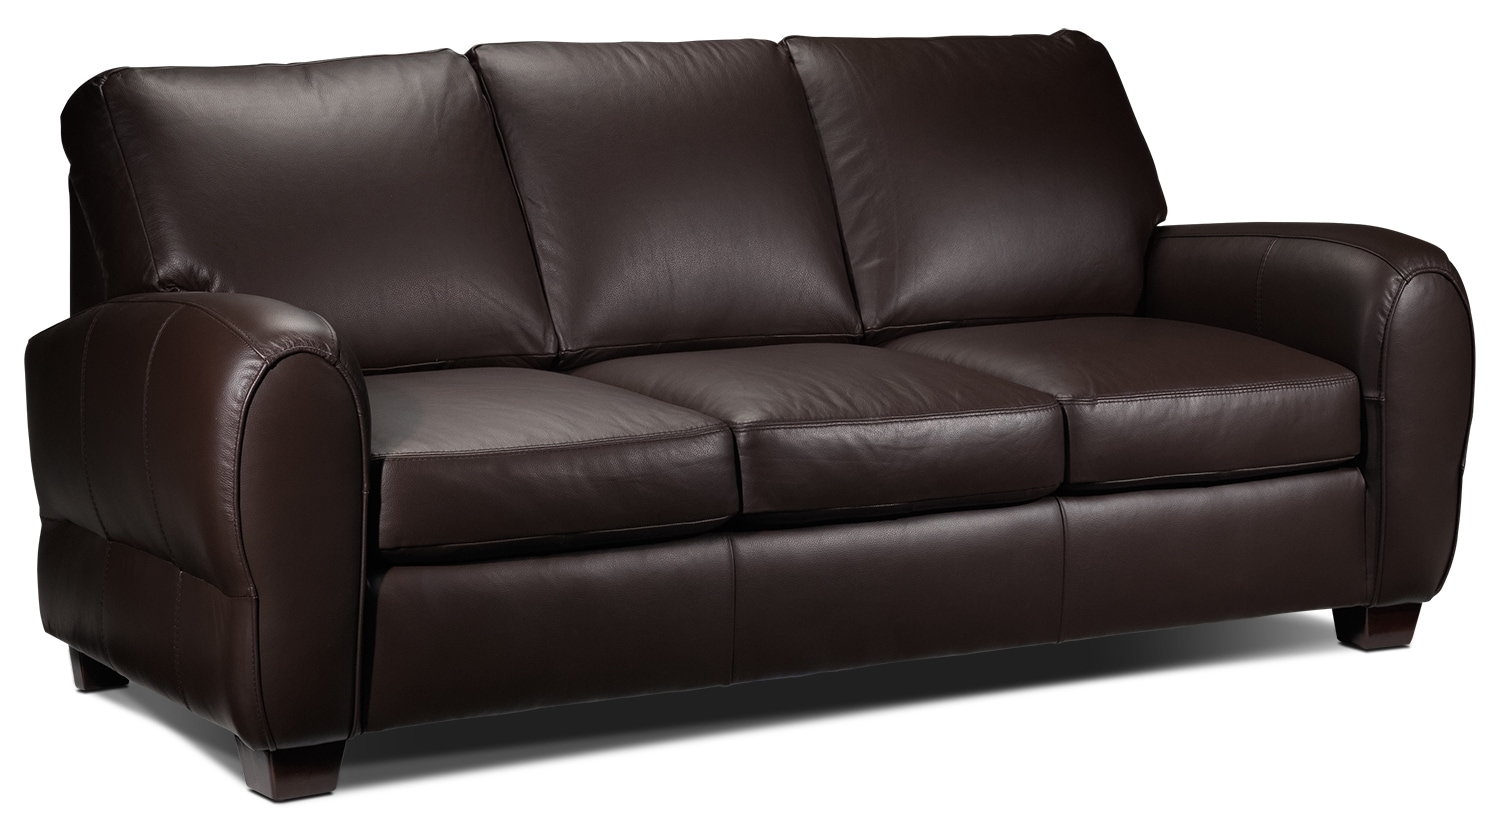 sheldon sofa chocolate leon 39 s. Black Bedroom Furniture Sets. Home Design Ideas